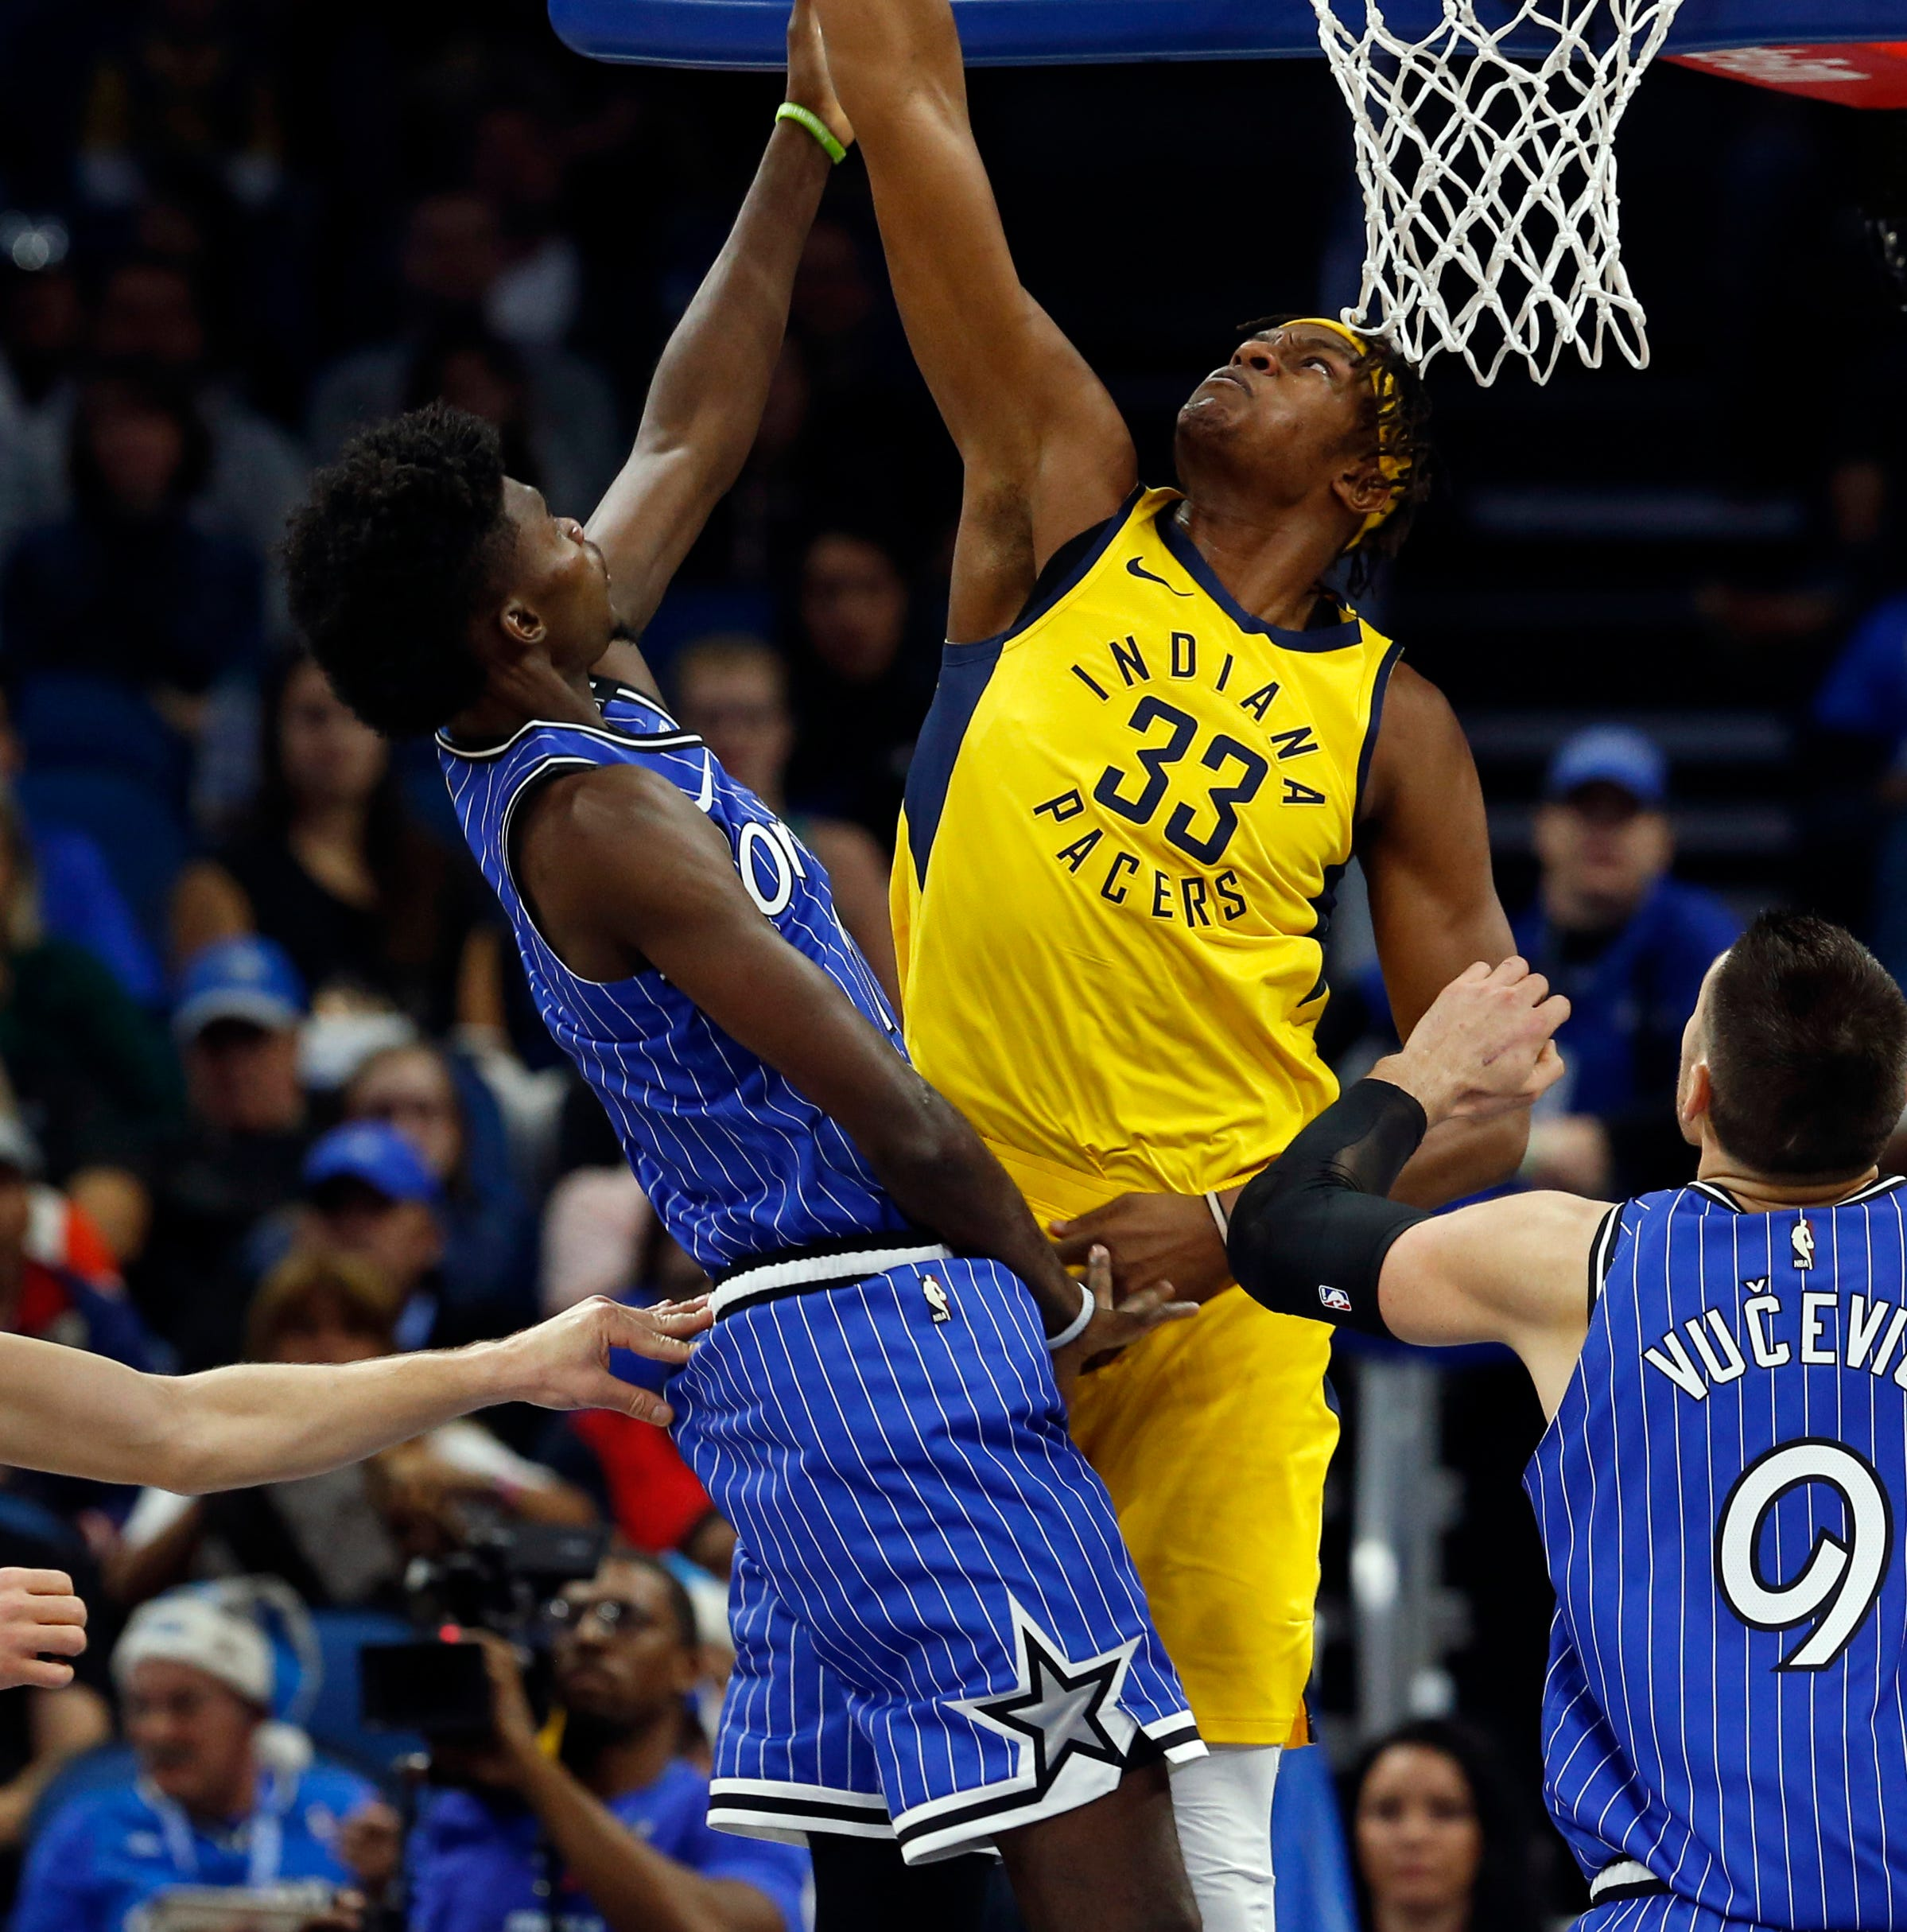 Insider: Look no further than center Myles Turner to explain Pacers' suffocating defense